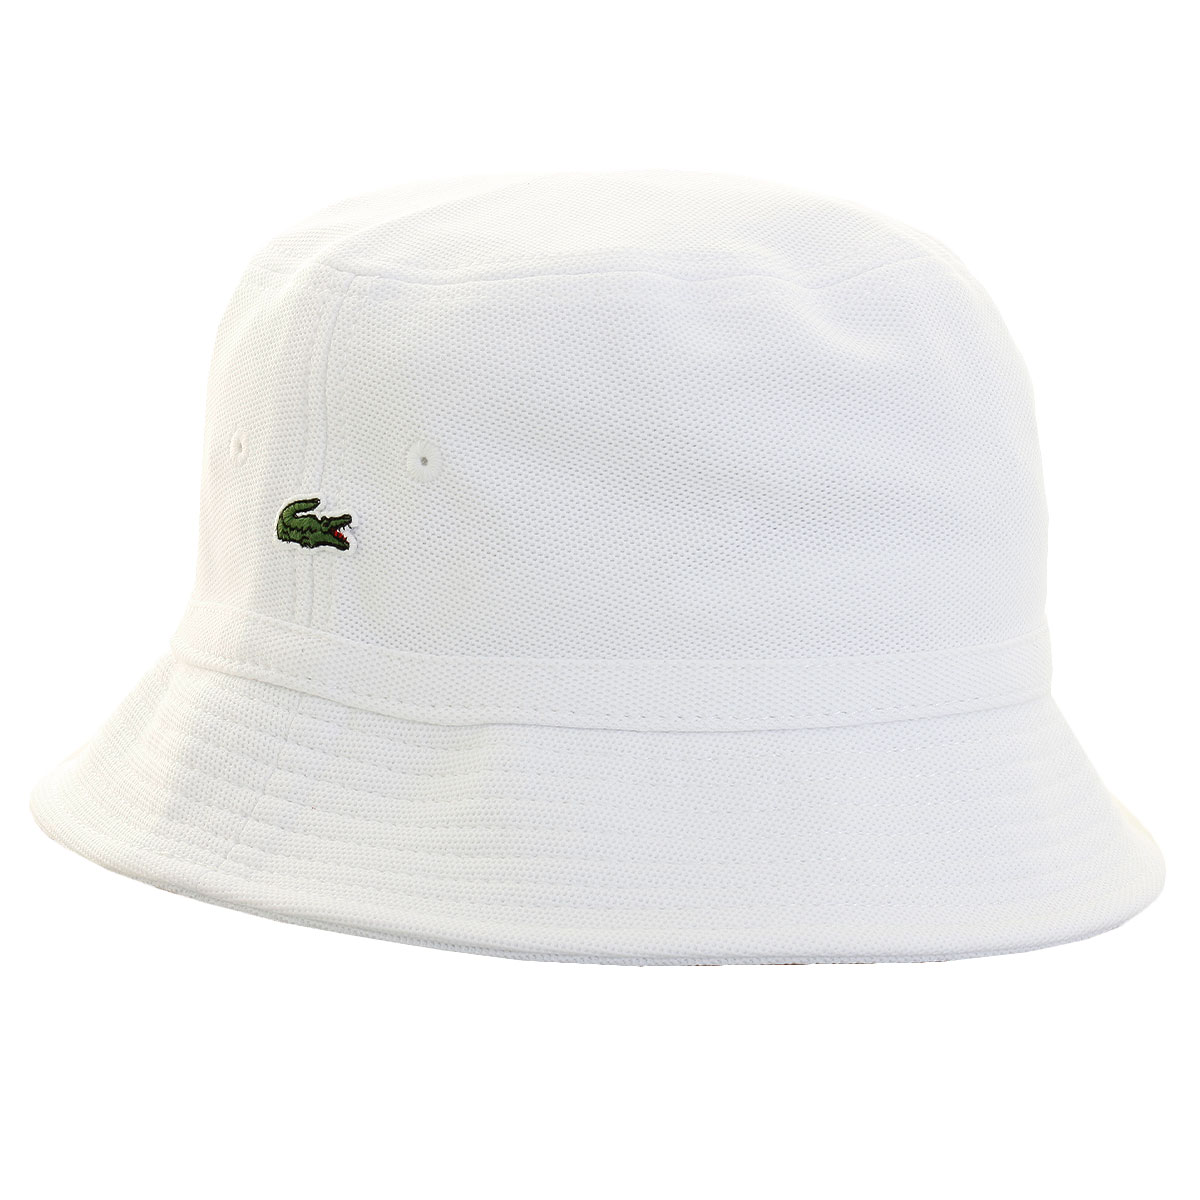 3ef617bab30 ... germany lacoste mens 2018 rk8490 cotton pique bucket hat 9d3b4 6d4b5 ...